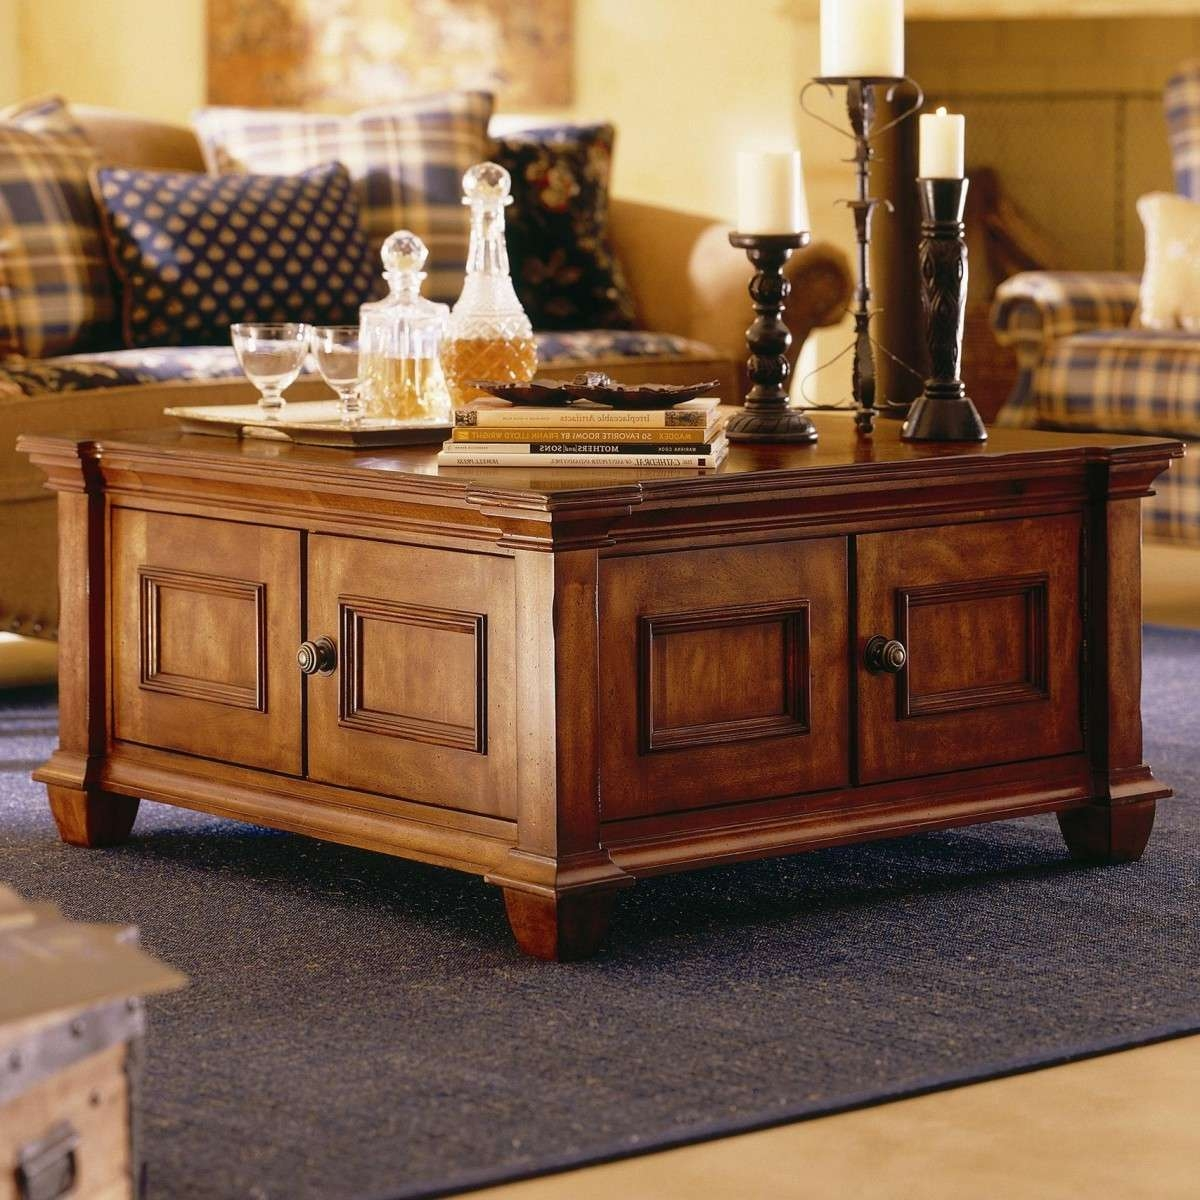 Coffee Tables : Square Coffee Table With Storage Cubes Drawers With Recent Large Coffee Tables With Storage (View 15 of 20)